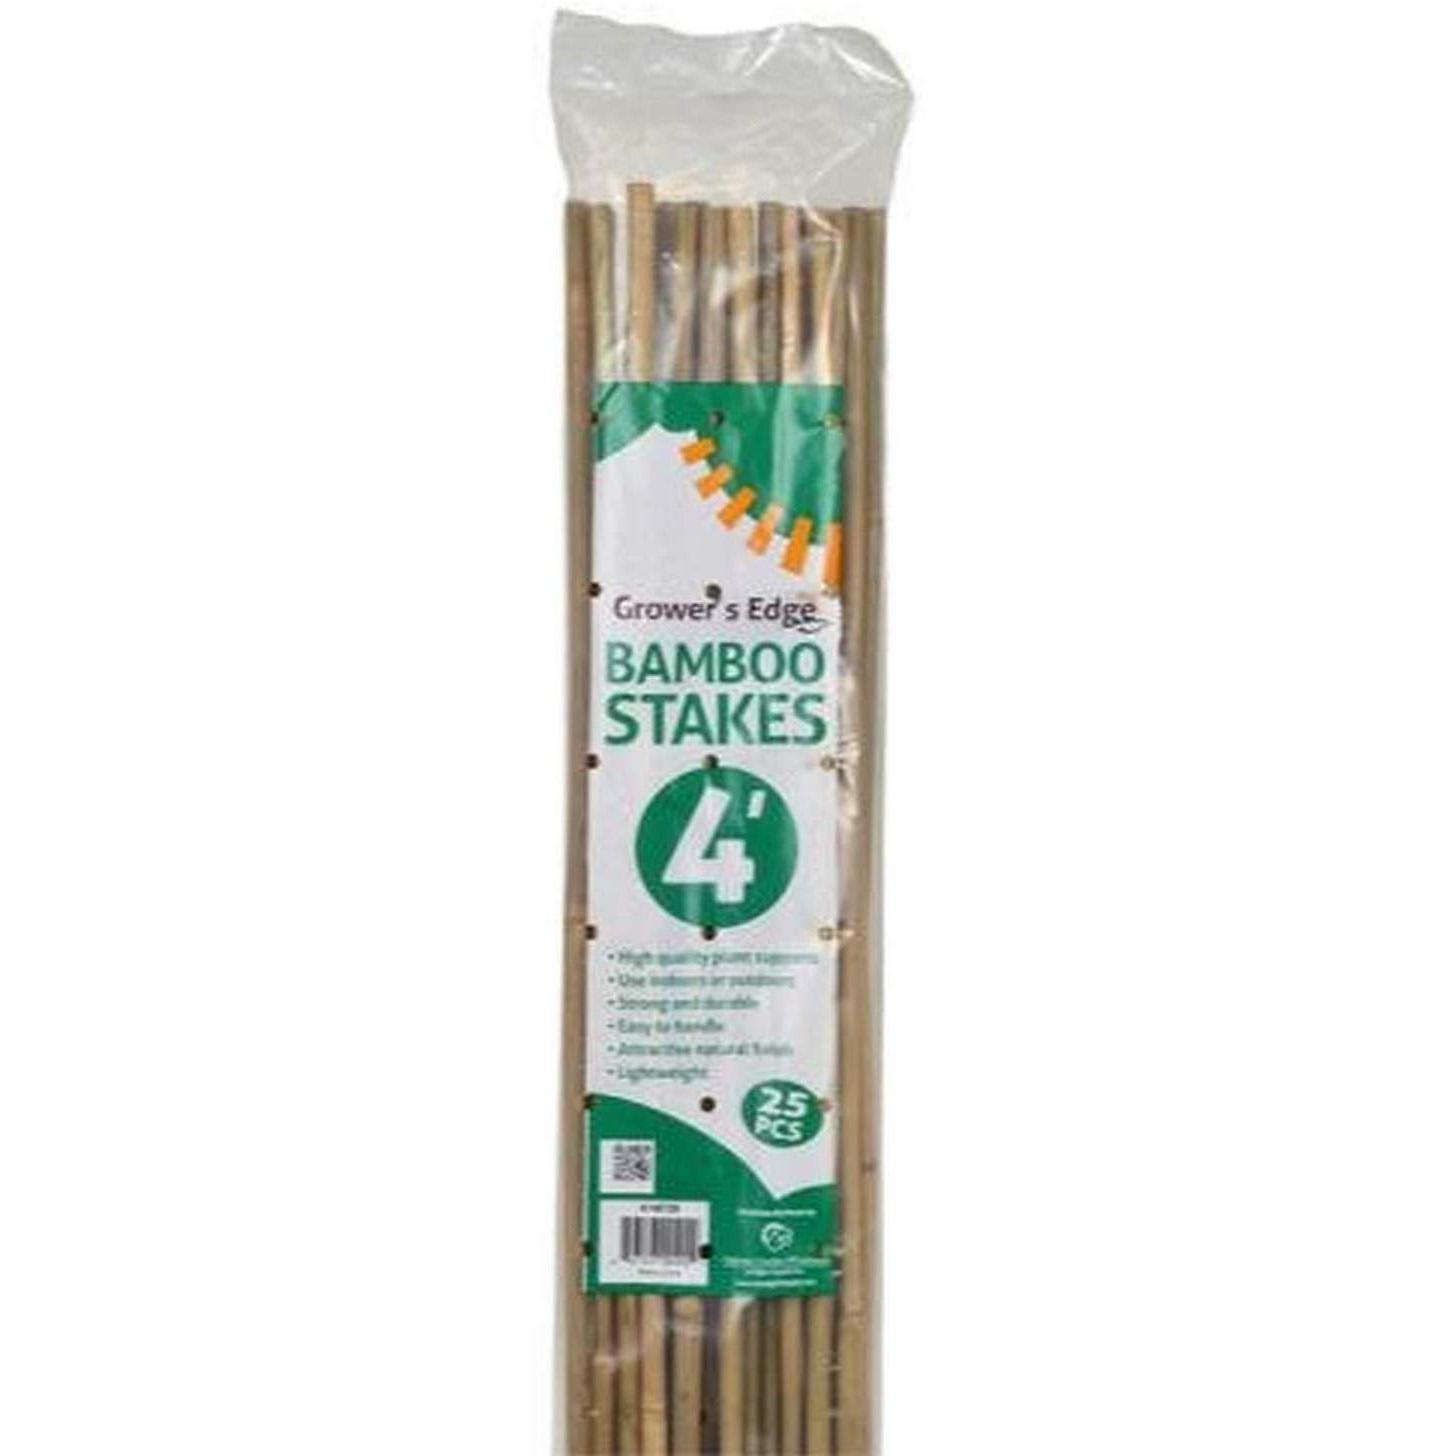 24 Growers Edge 4ft Bamboo Plant Support Poles for $4.88